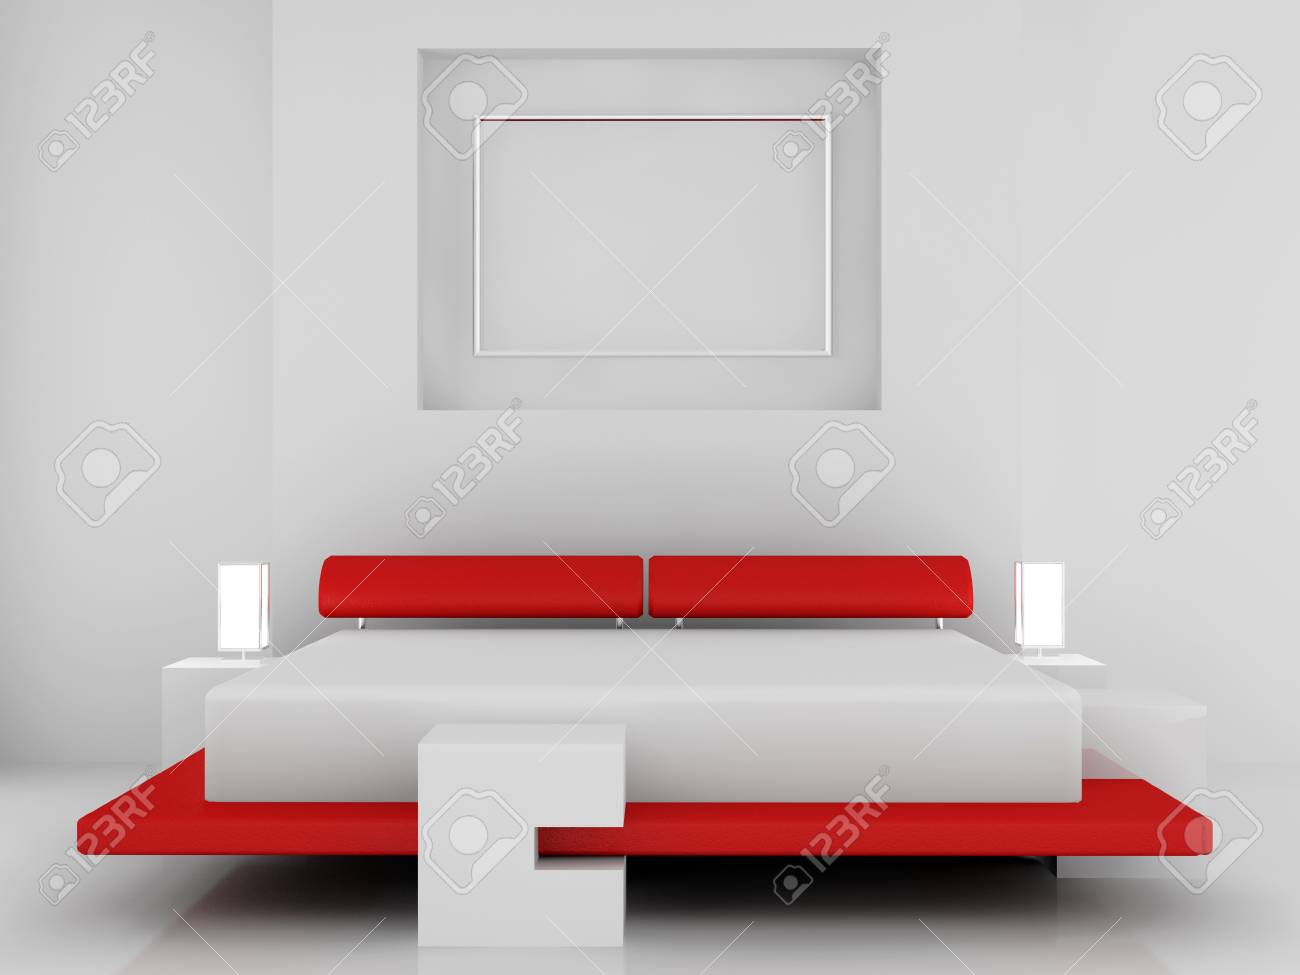 Modern interior of a bedroom room 3D Stock Photo - 7109079